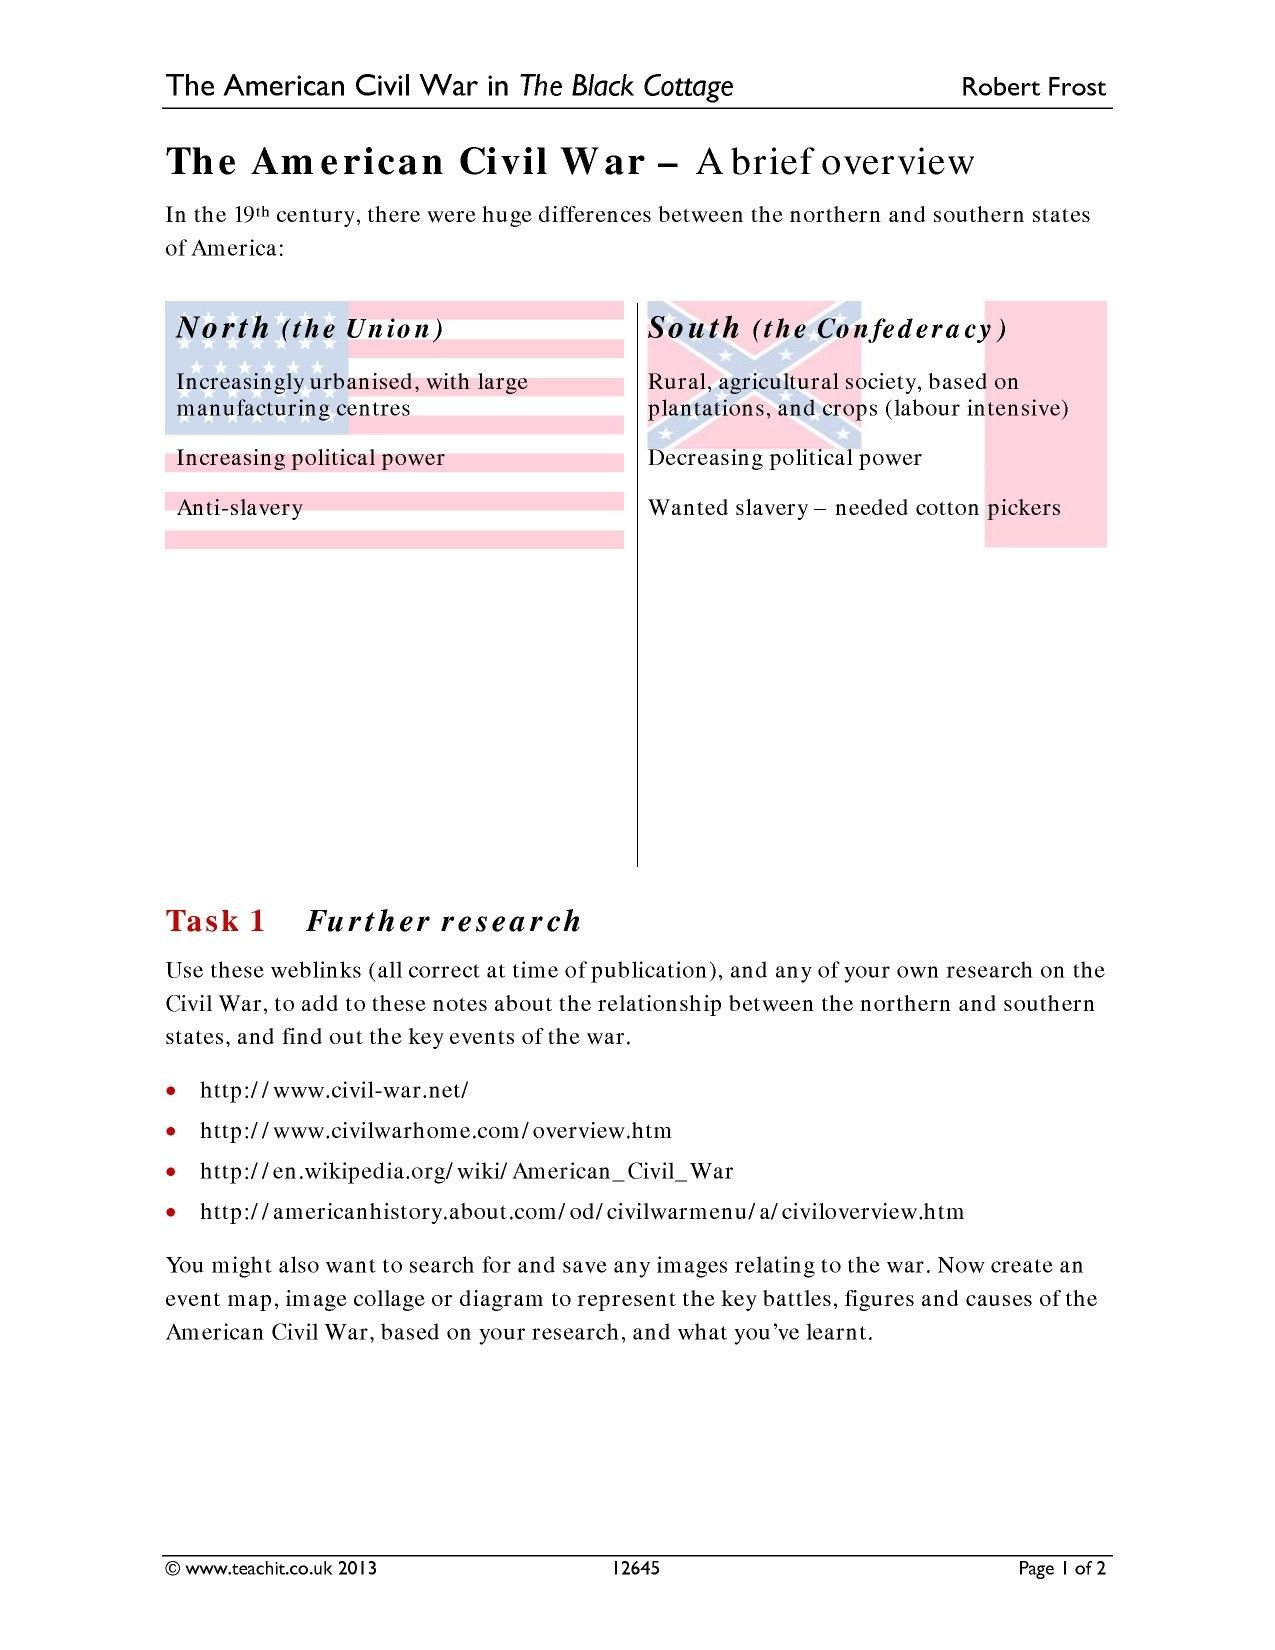 The Road To The Civil War Worksheet Answers